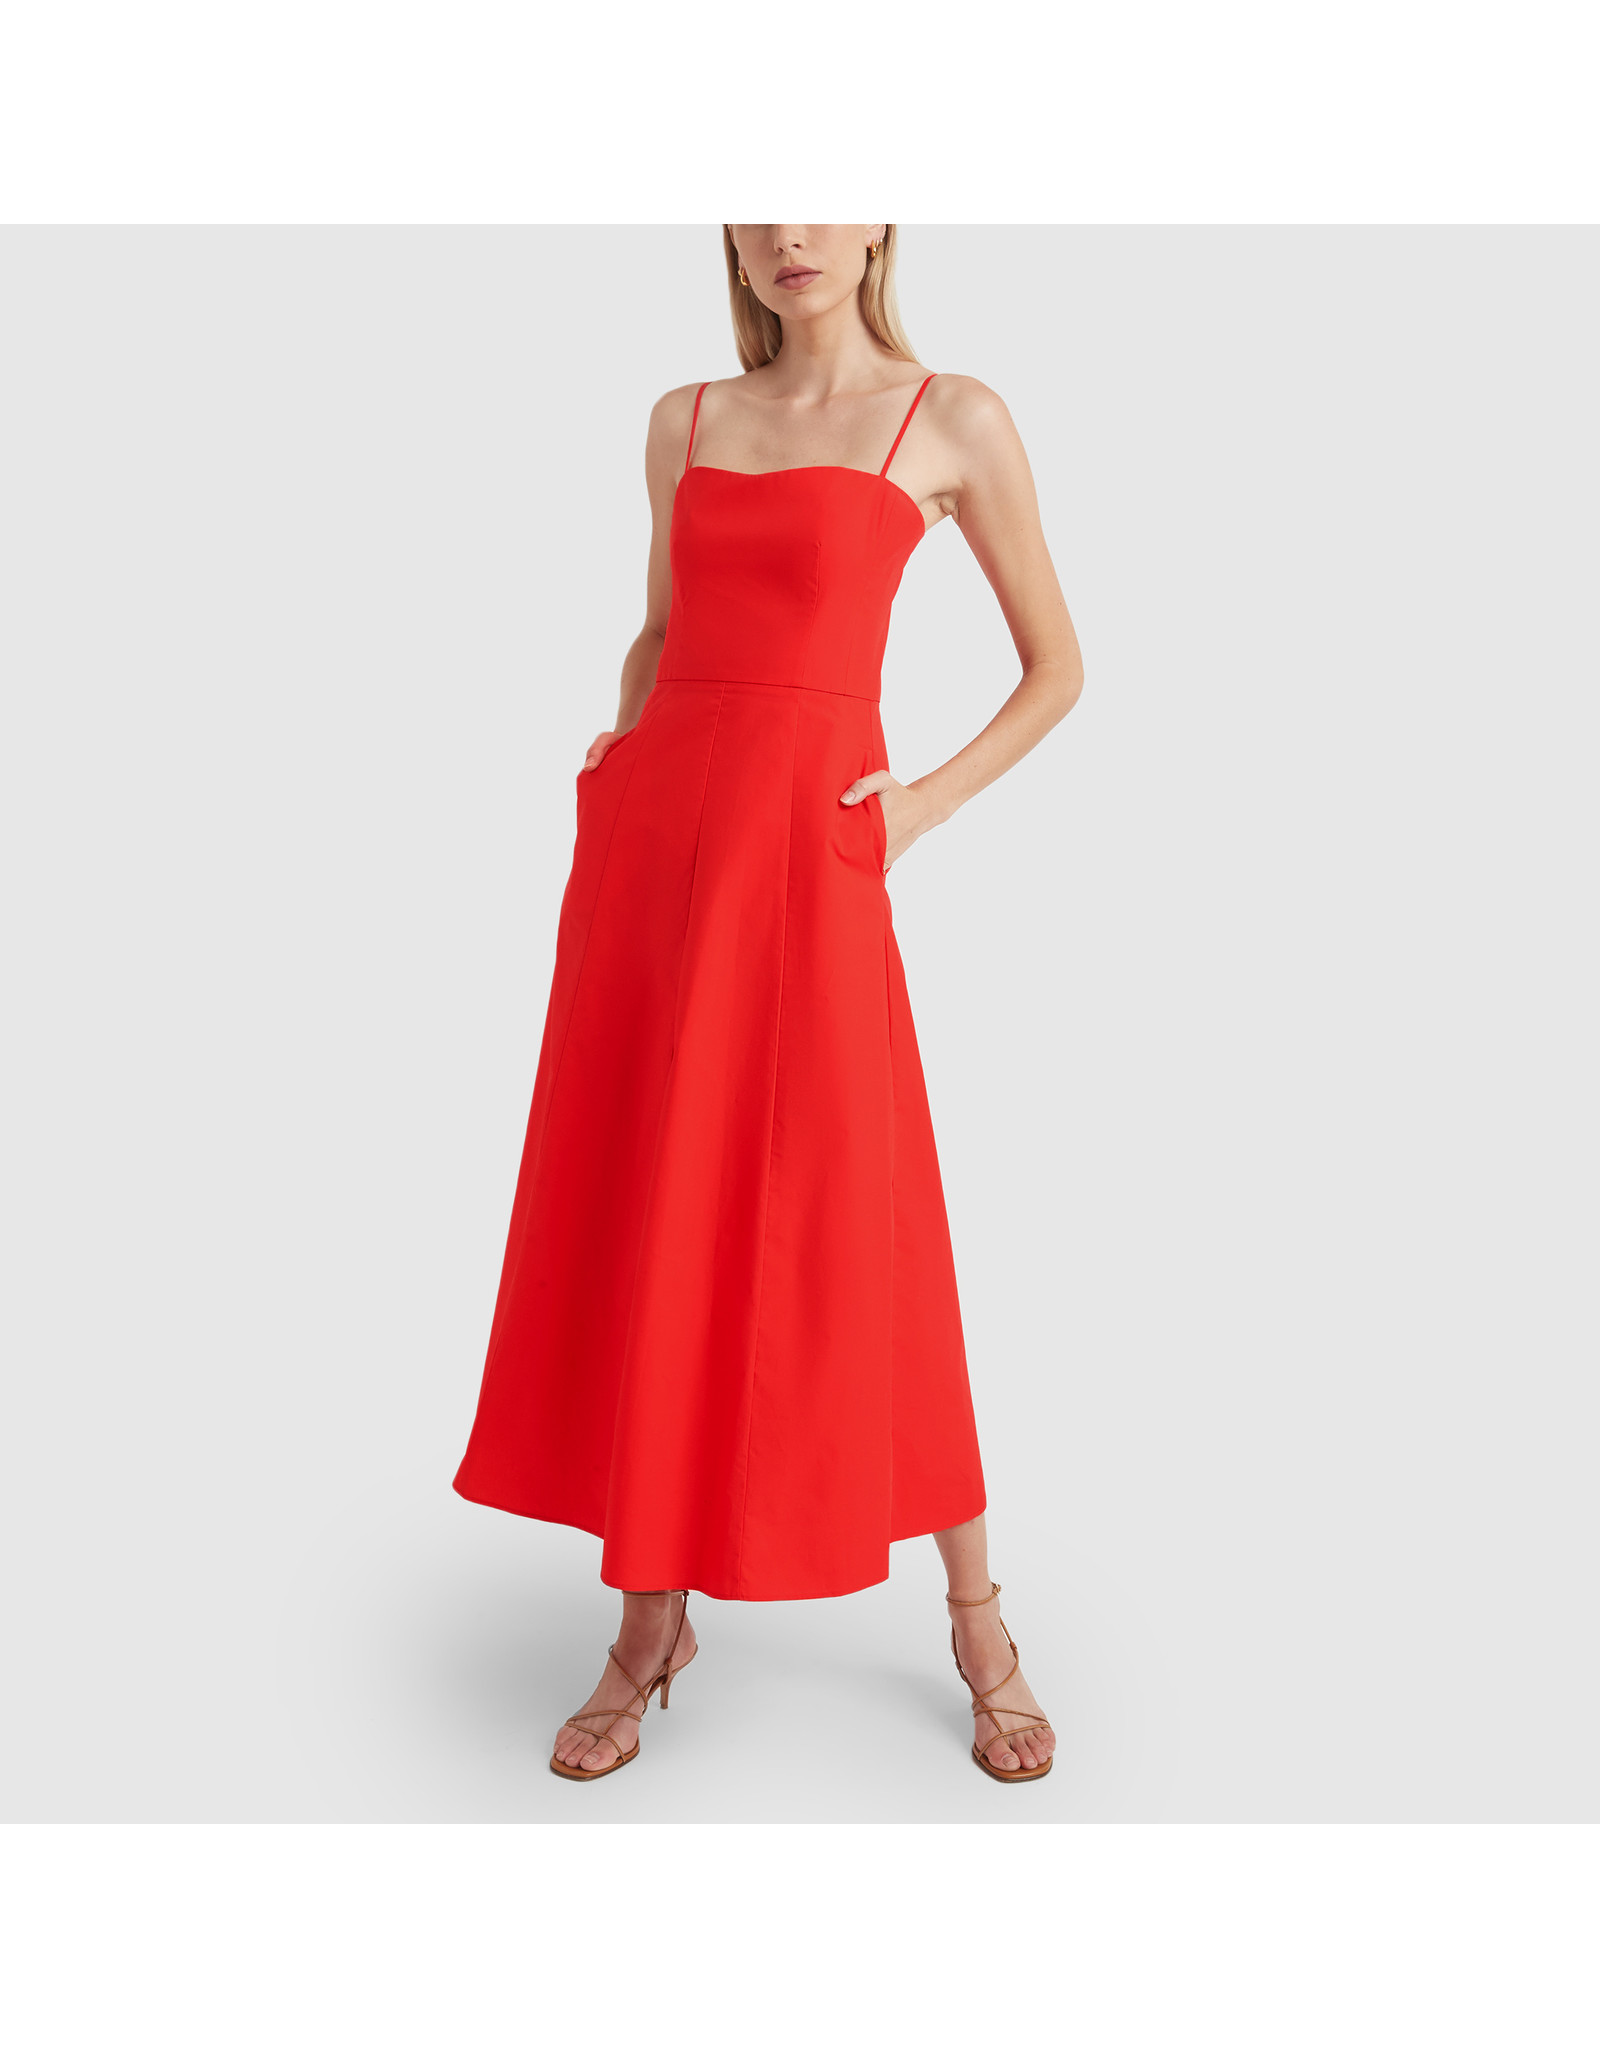 G. Label Cambria Skinny Strap Mid-Length dress (Color: Red, Size: 4)